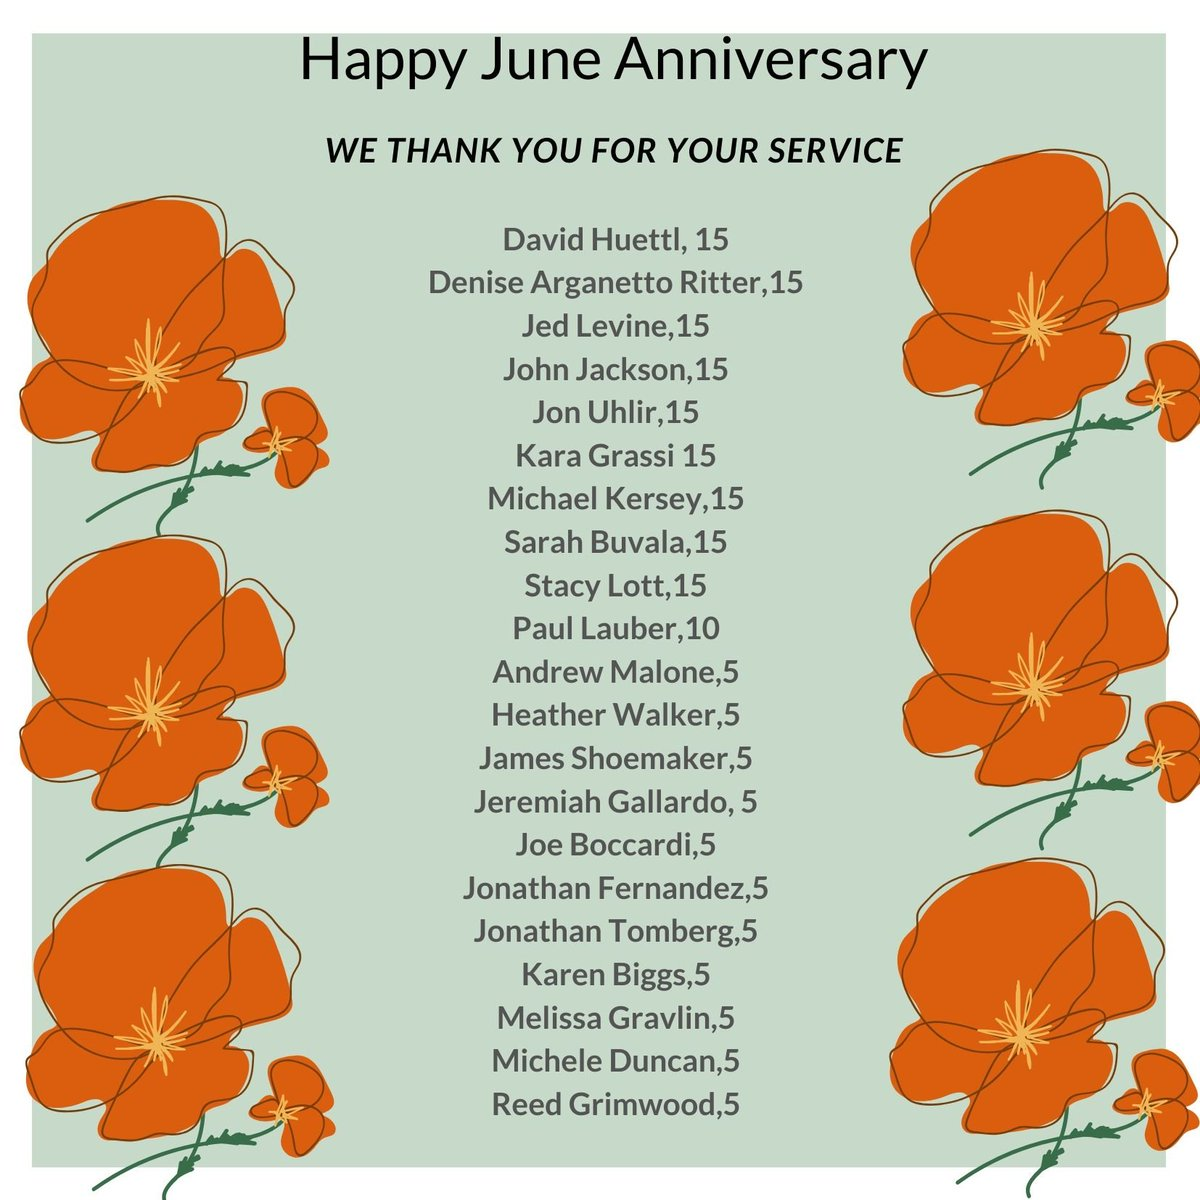 We thank you for your service. Happy June Annviersary!  *Please note, those mentioned in the imagery are milestone anniversaries listed in five year increments. So, please know everyone is valued, whatever the years. https://t.co/1ATQfyALEG